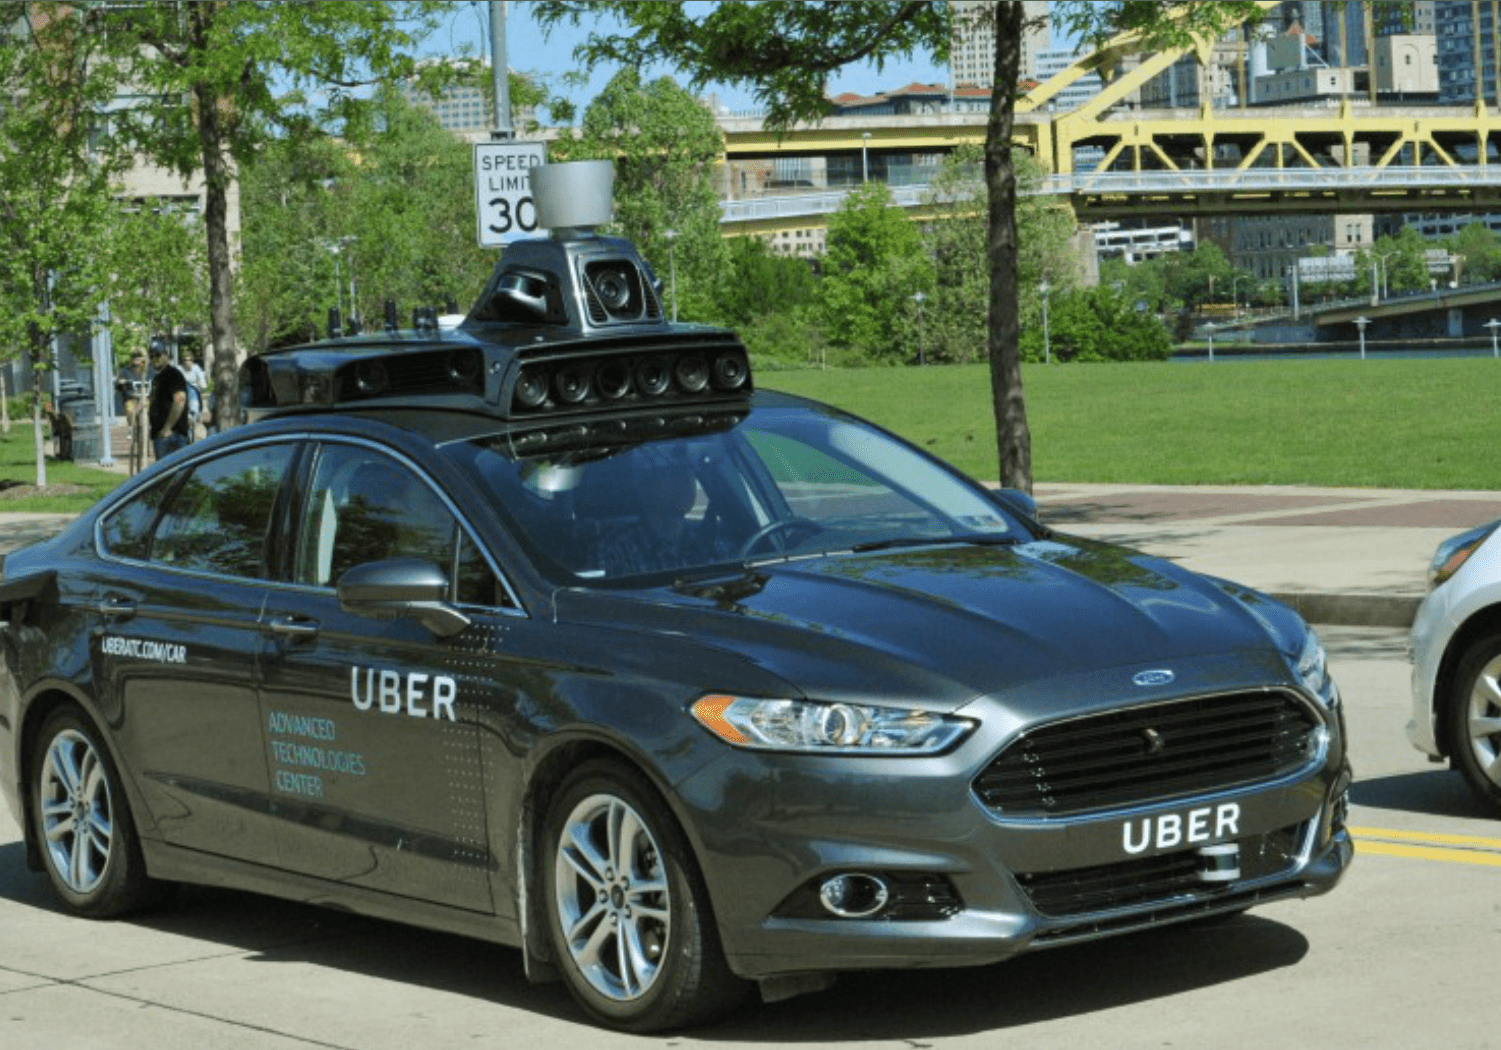 30 New Public Companies Including Uber Face Selloffs by Year-End